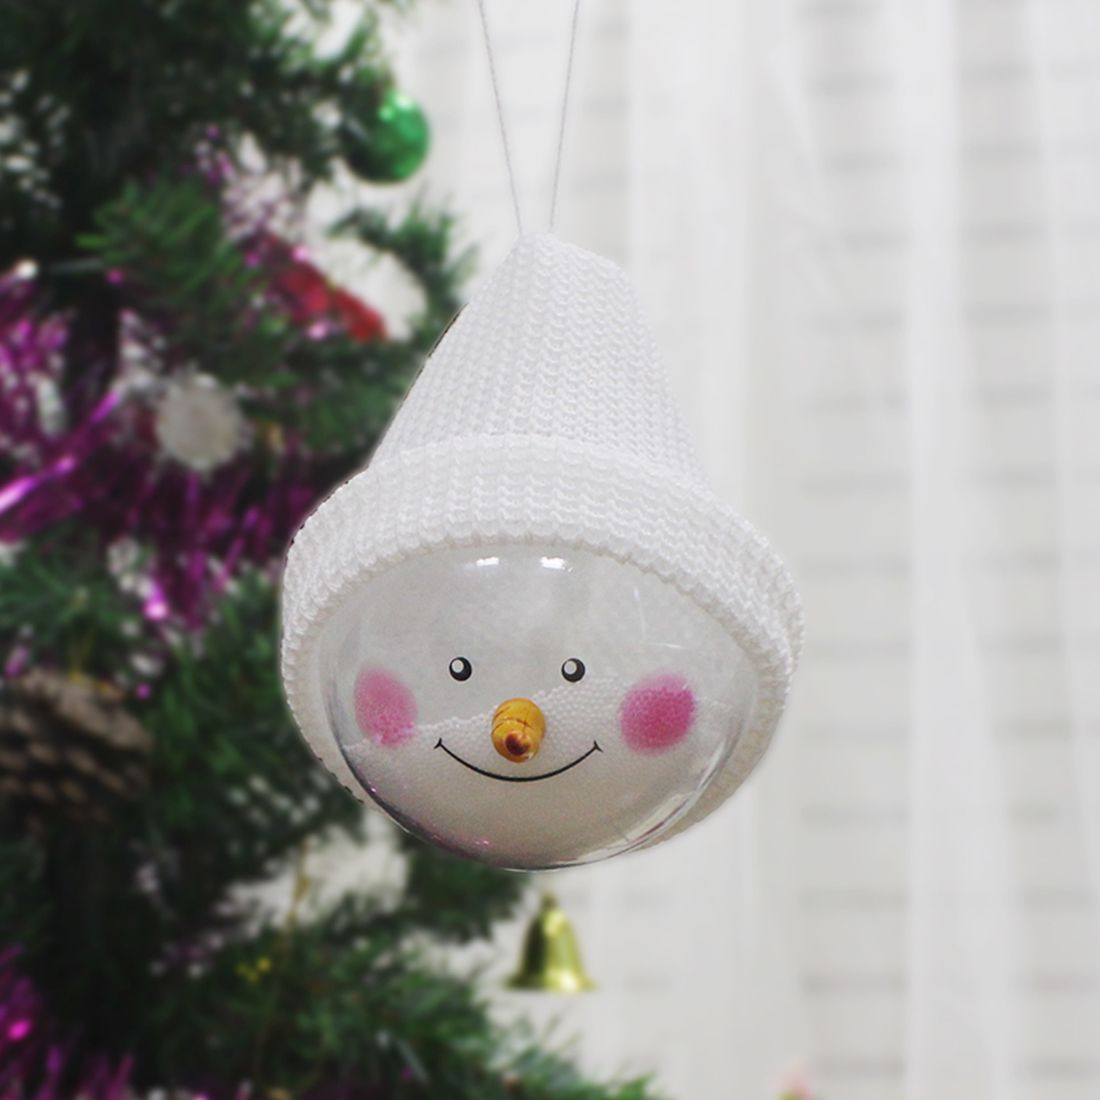 New Merry Christmas Children Toy Hanging Tree Christmas Ball Ornament With  Hat Garden Decor 15*